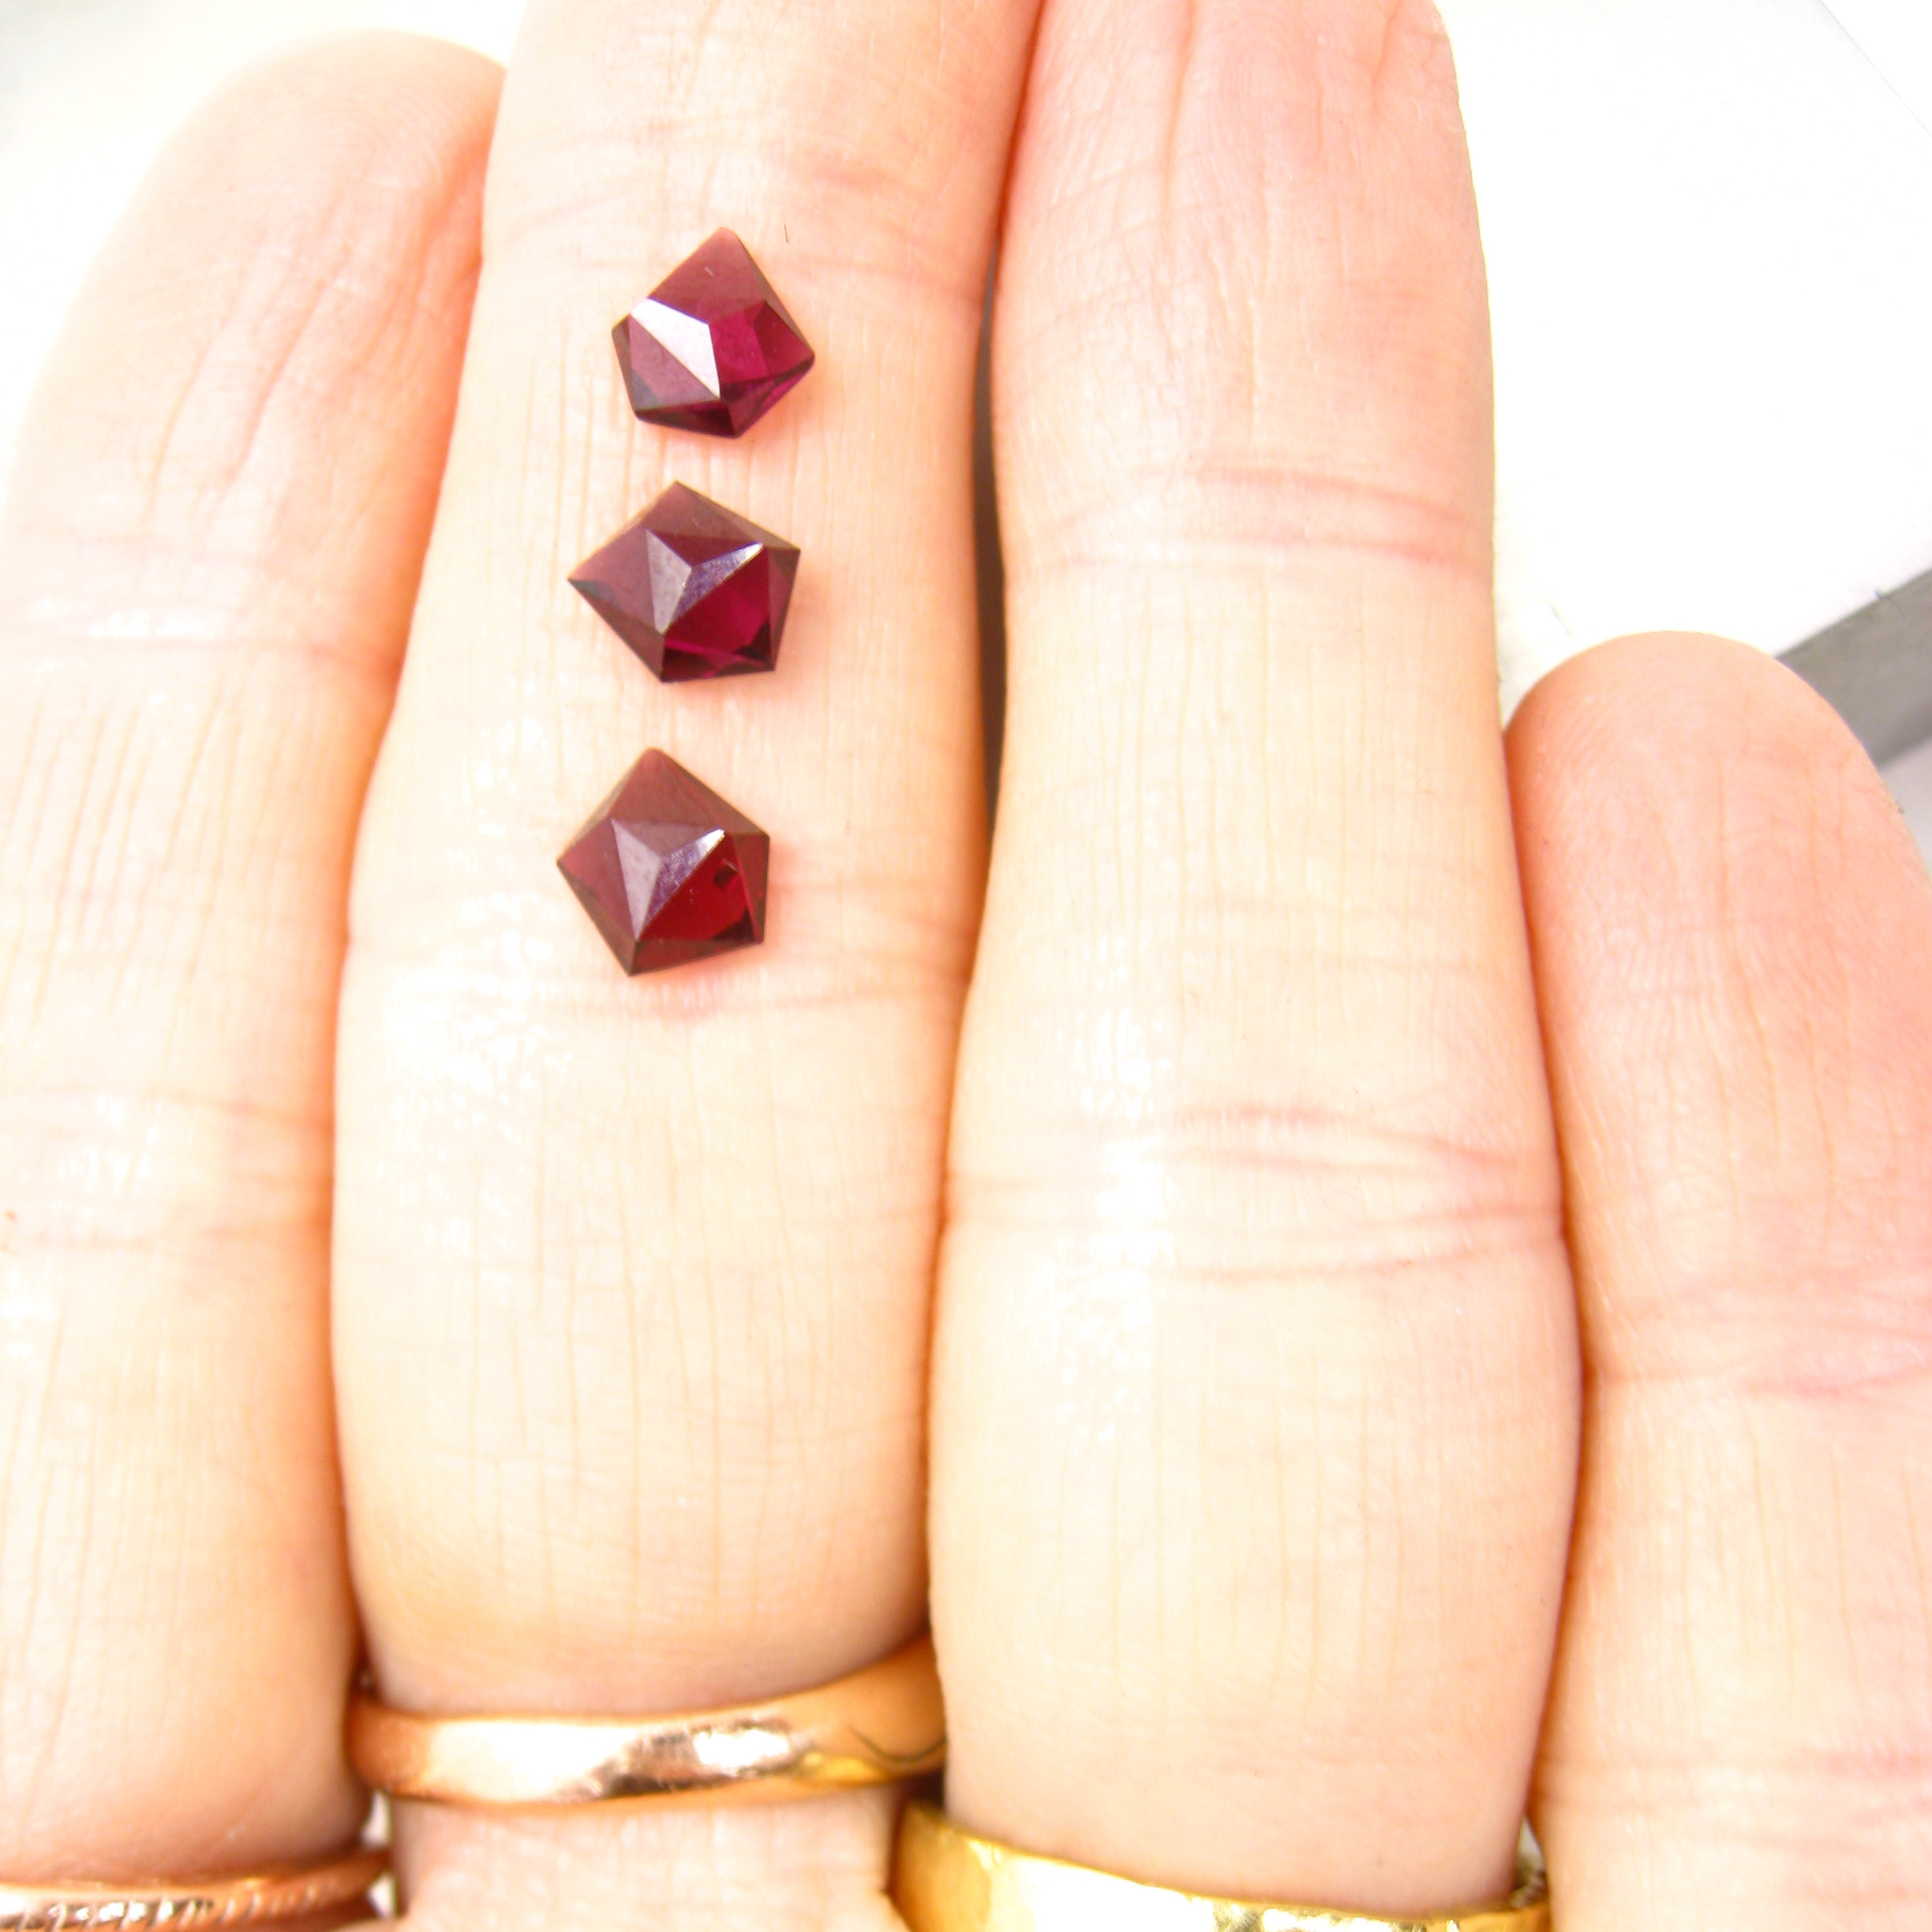 Ant-hill garnets are my new favorite gemstone.